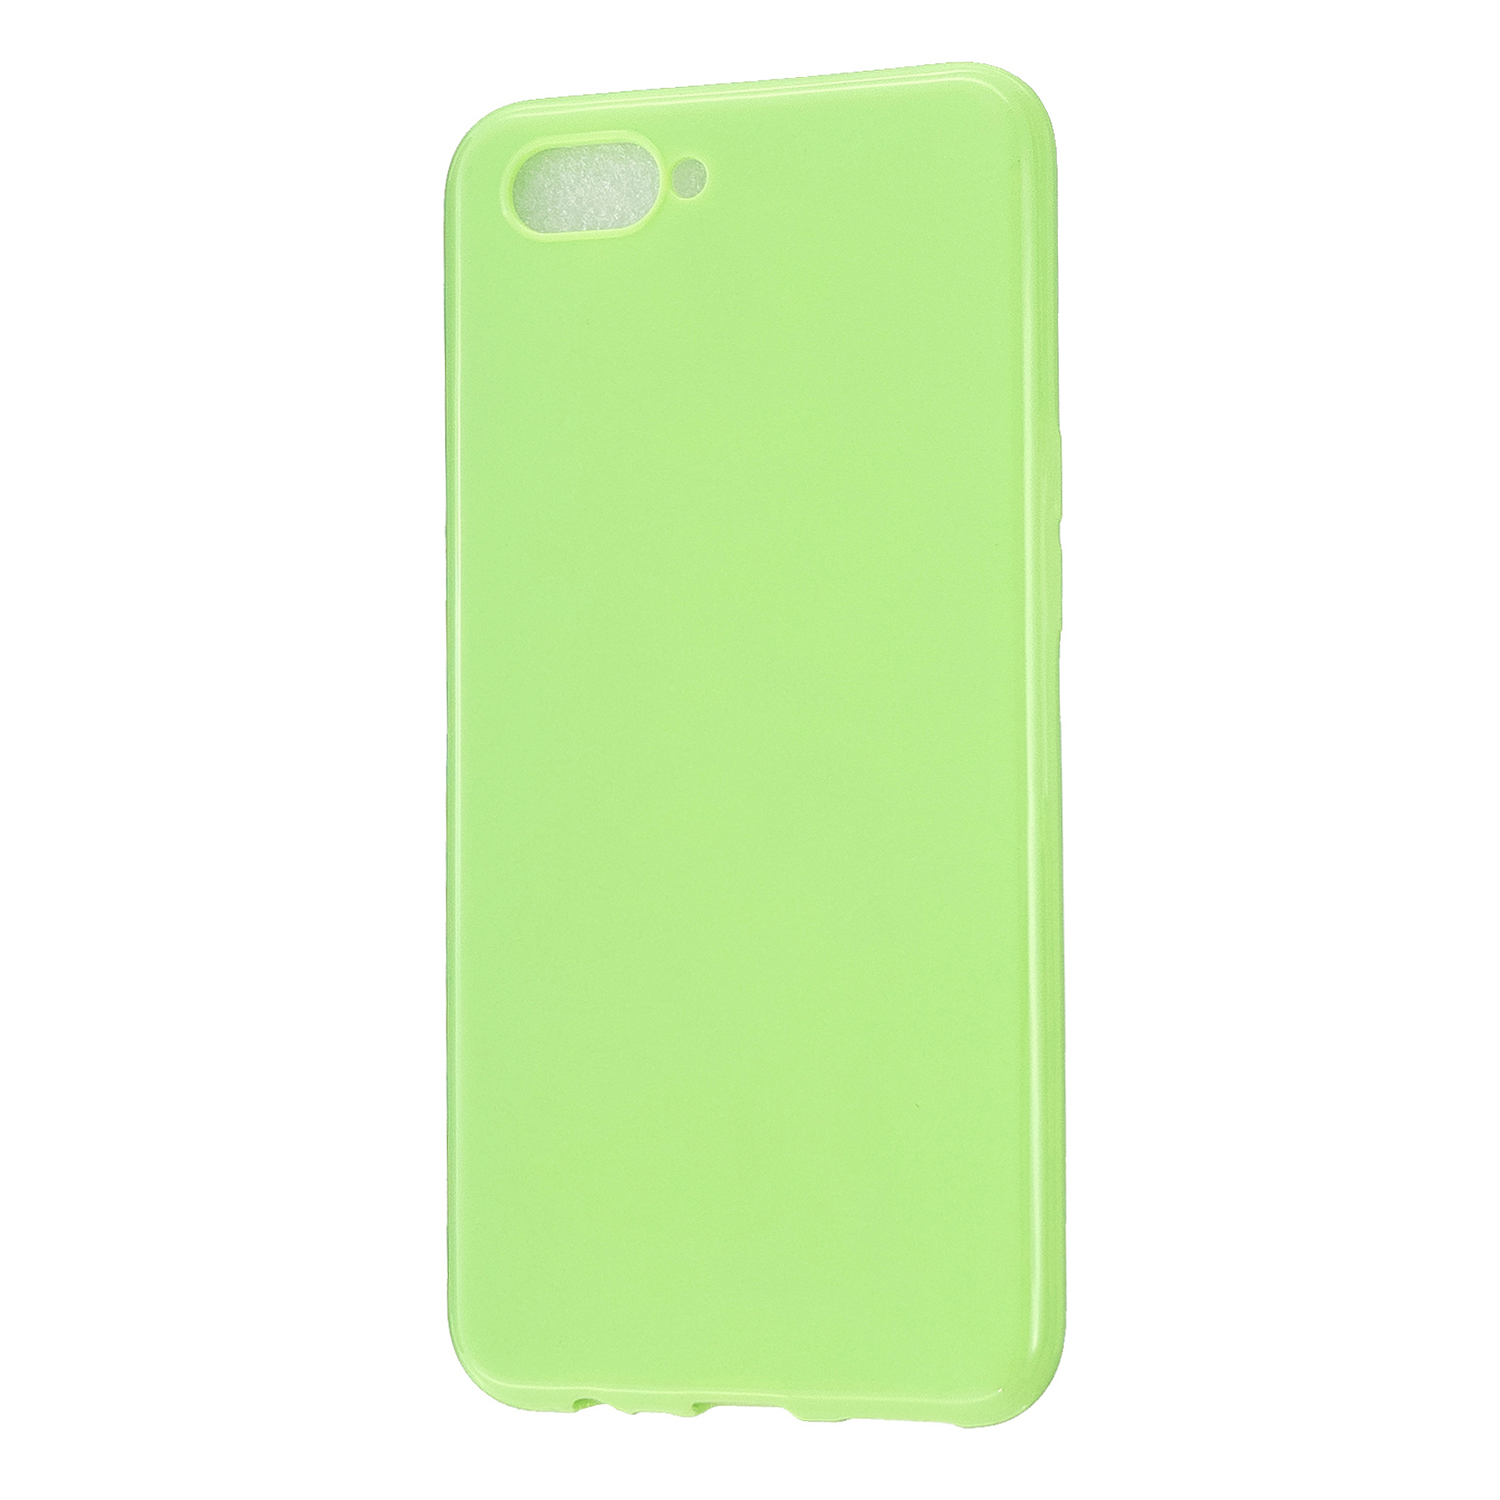 For OPPO A5/A3S/A9 2020 Cellphone Cover Soft Touch Anti-scratch Shockproof TPU Mobile Phone Case  Fluorescent green